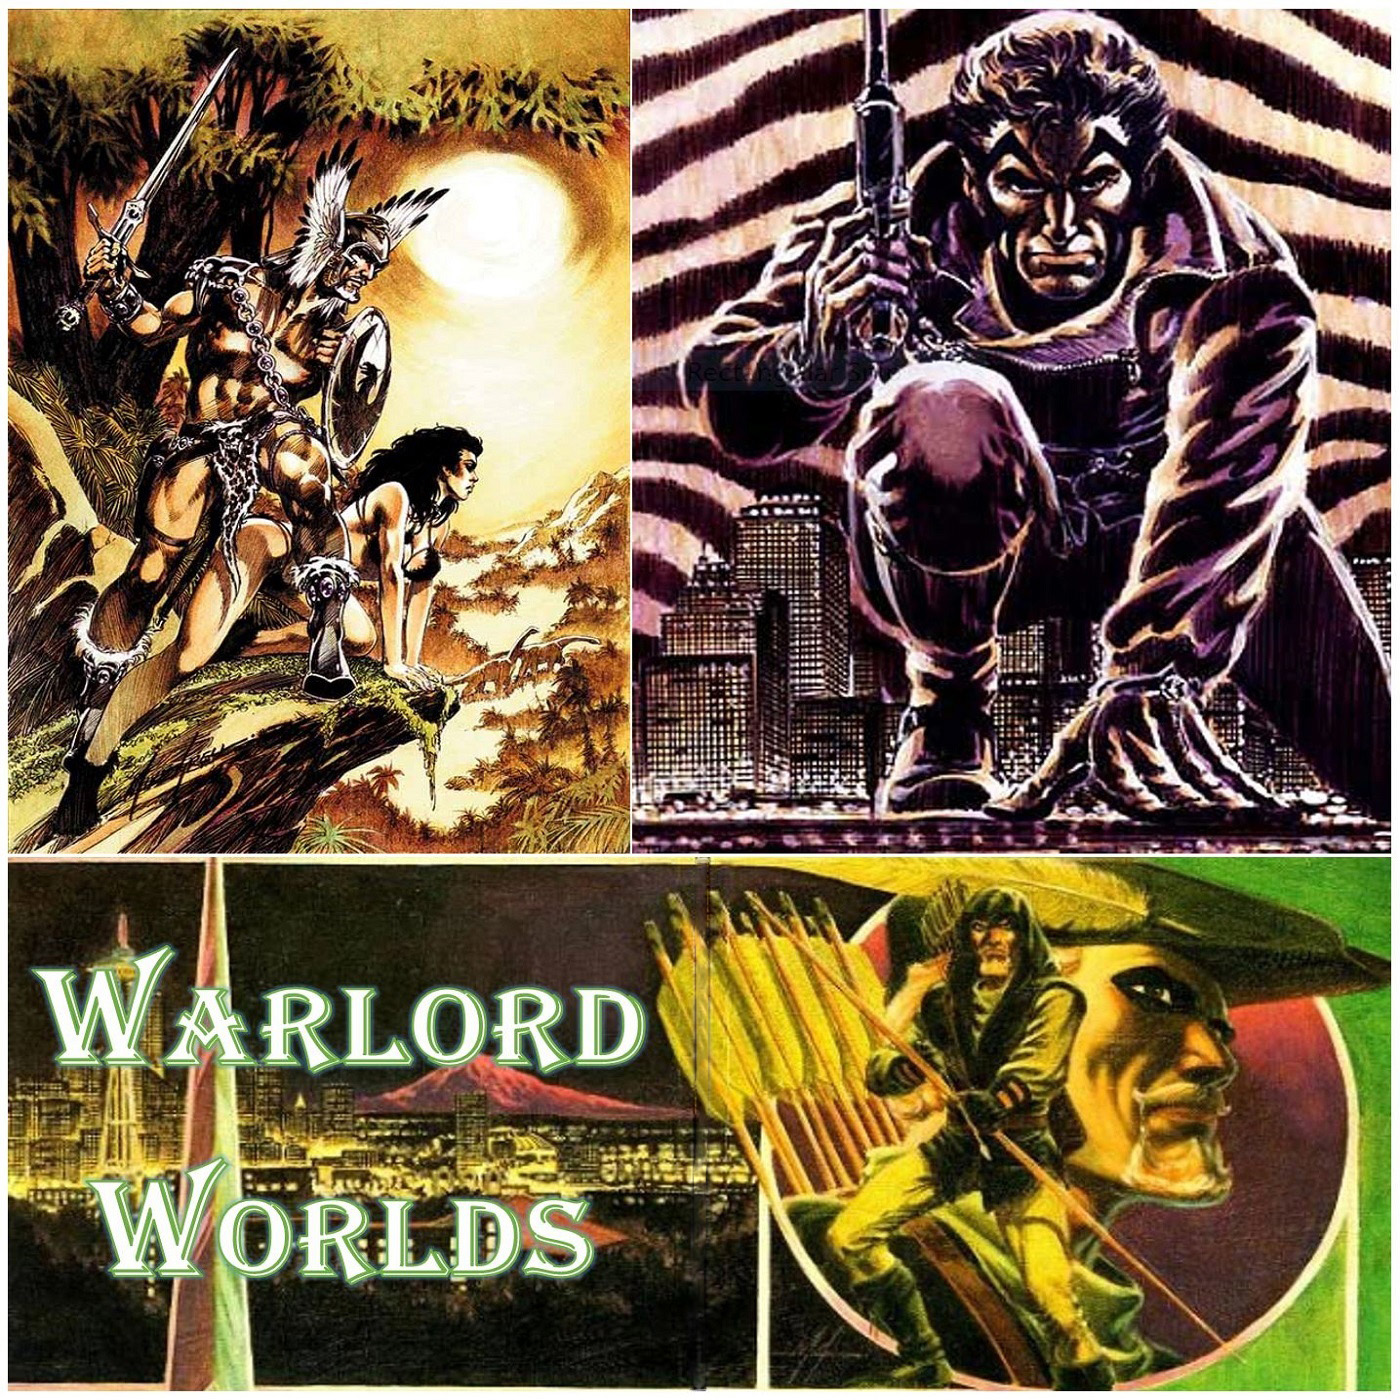 Warlord Worlds Episode 15: Mike Grell and the 30th Anniversary of The Longbow Hunters